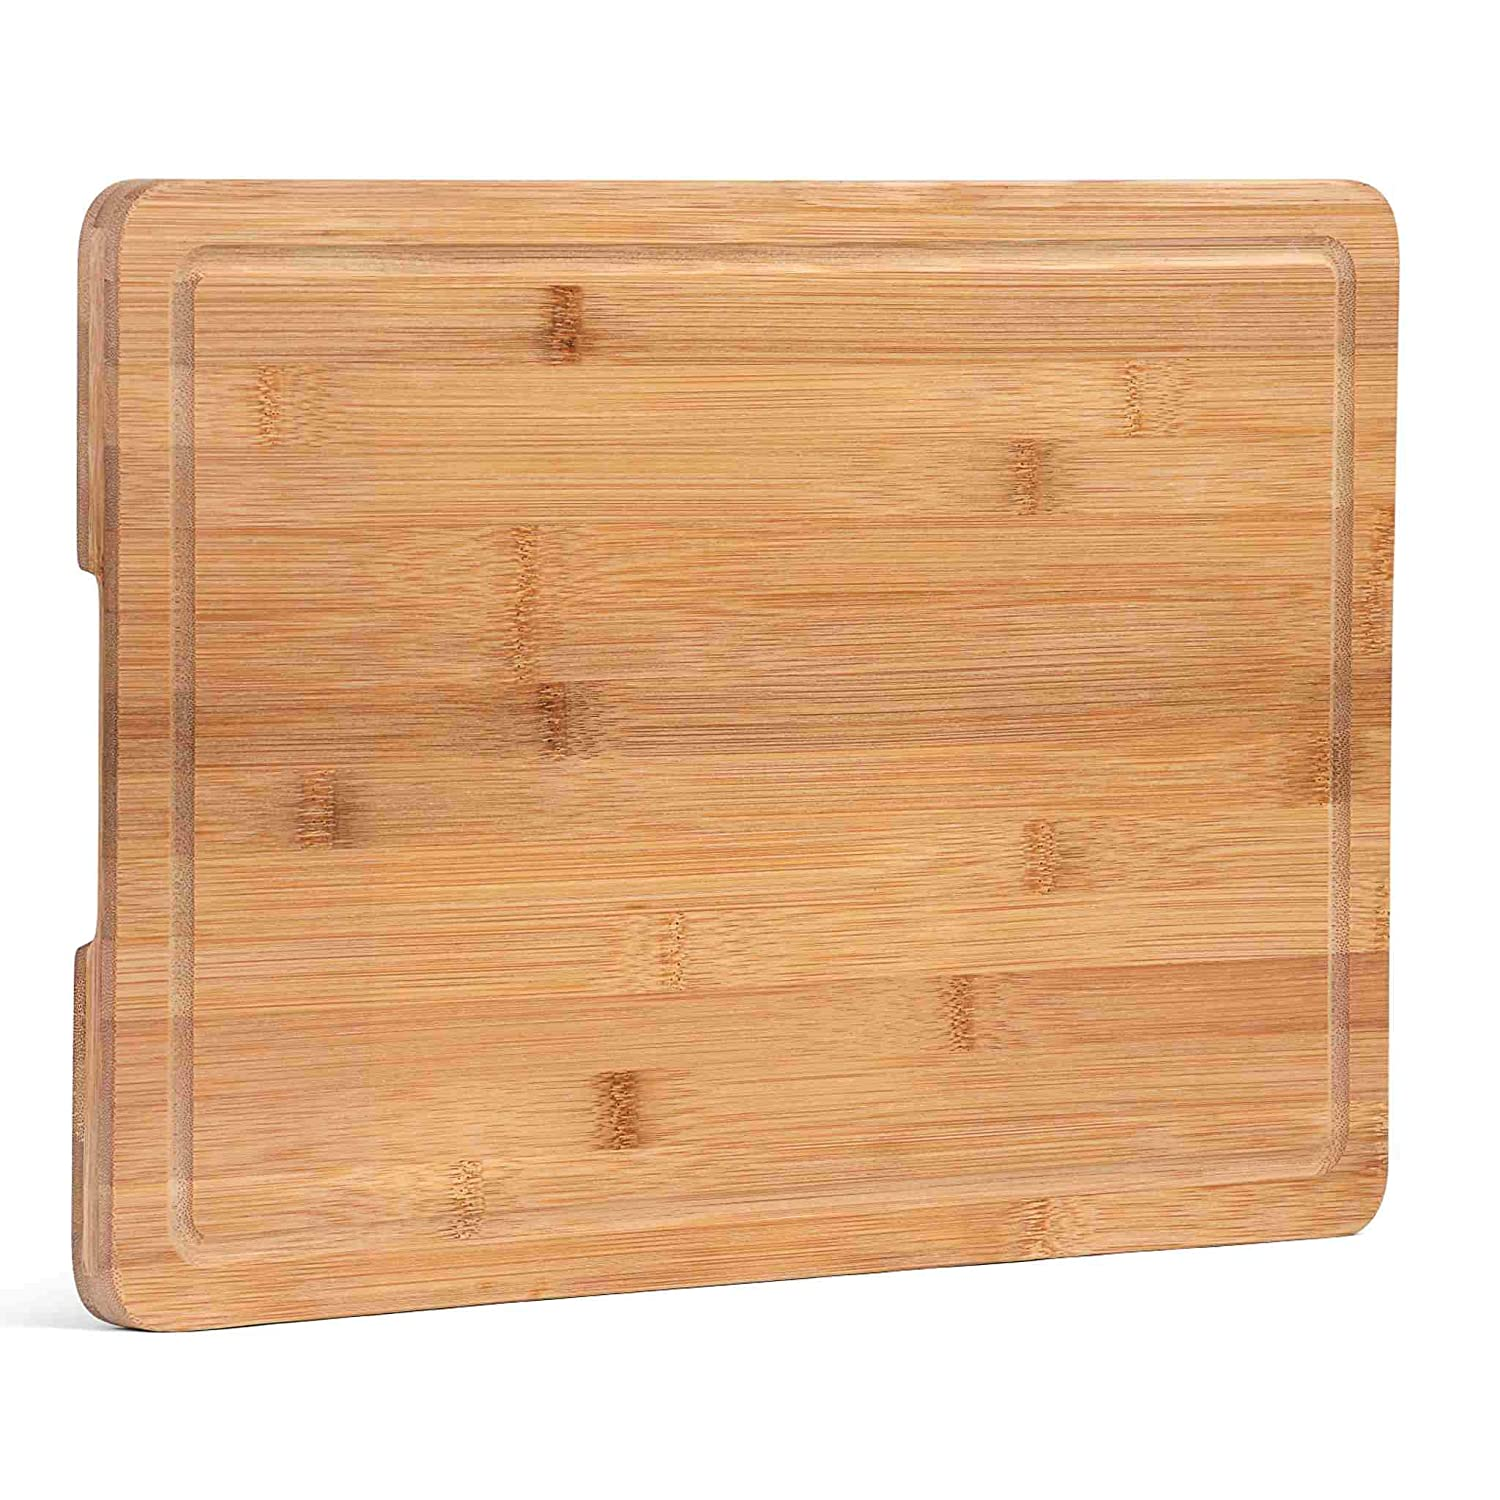 """Reversible 18"""" x 12"""" Bamboo Cutting & Serving Board by NBNL 